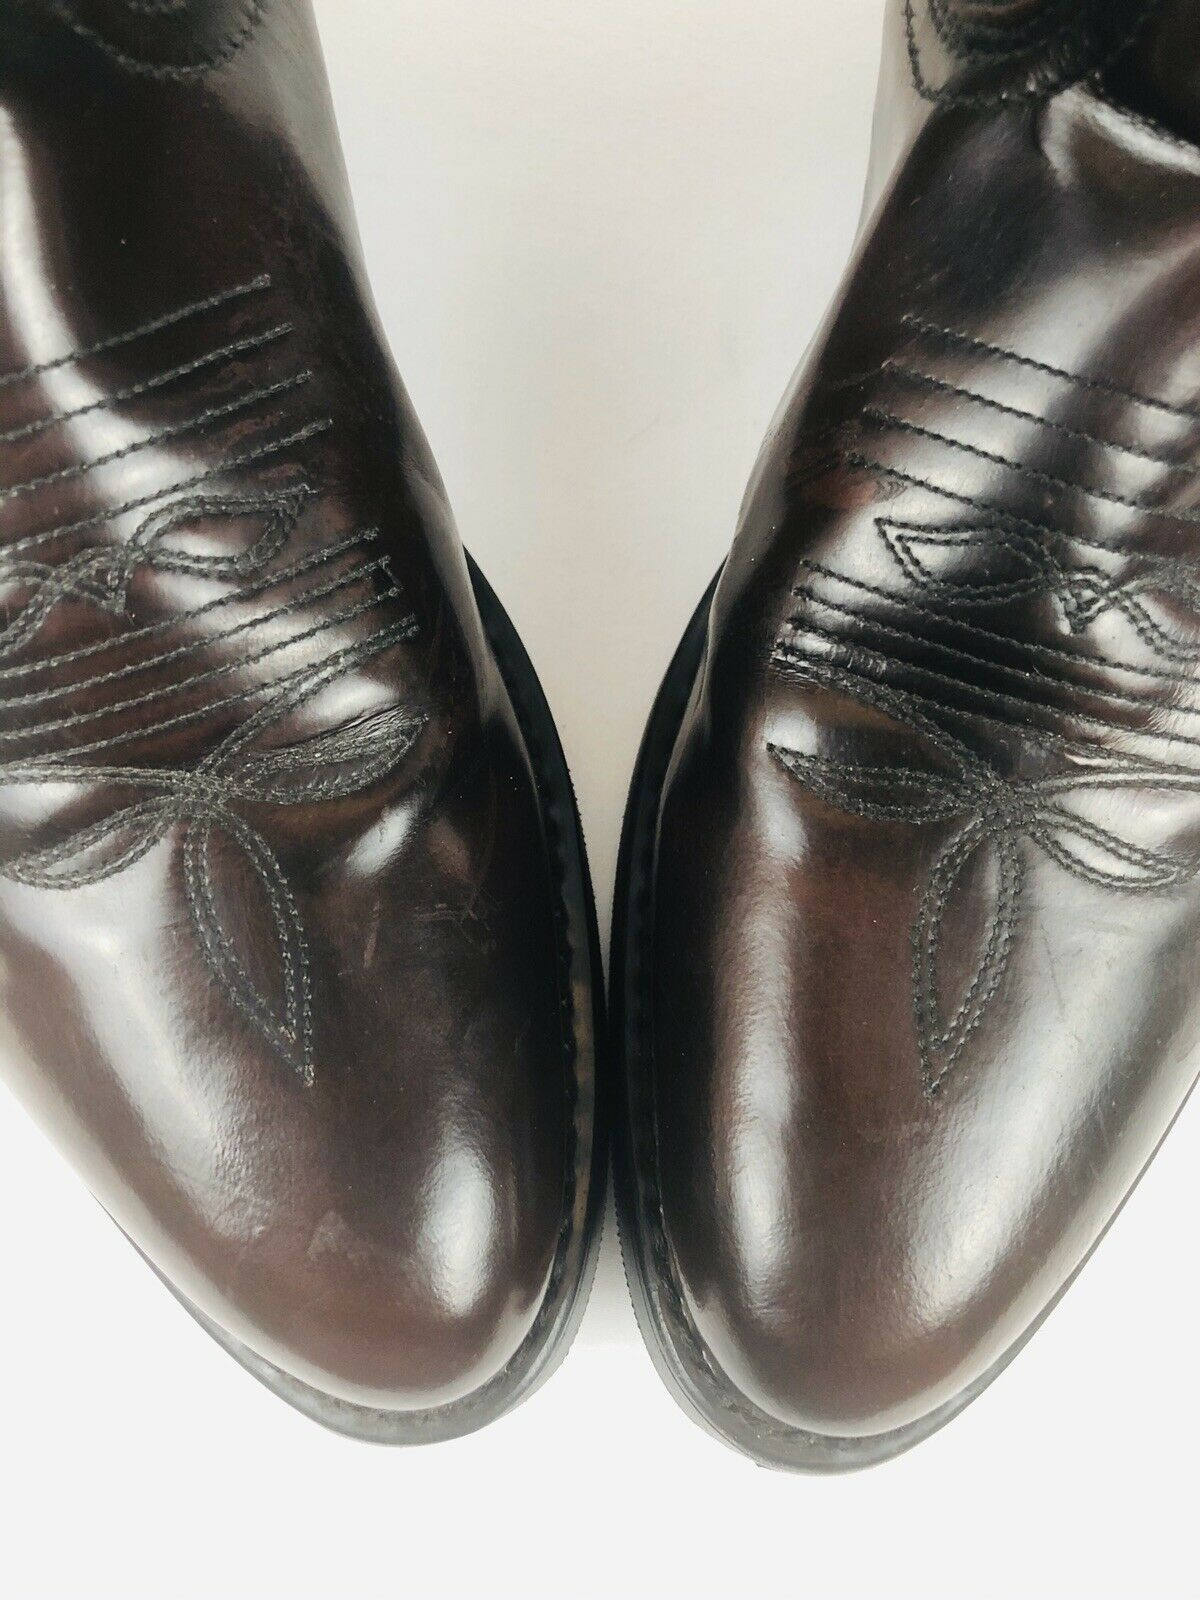 Masterson RB875 Leather Burgundy Cowboy Weatern Boots With Stitching Size 8D